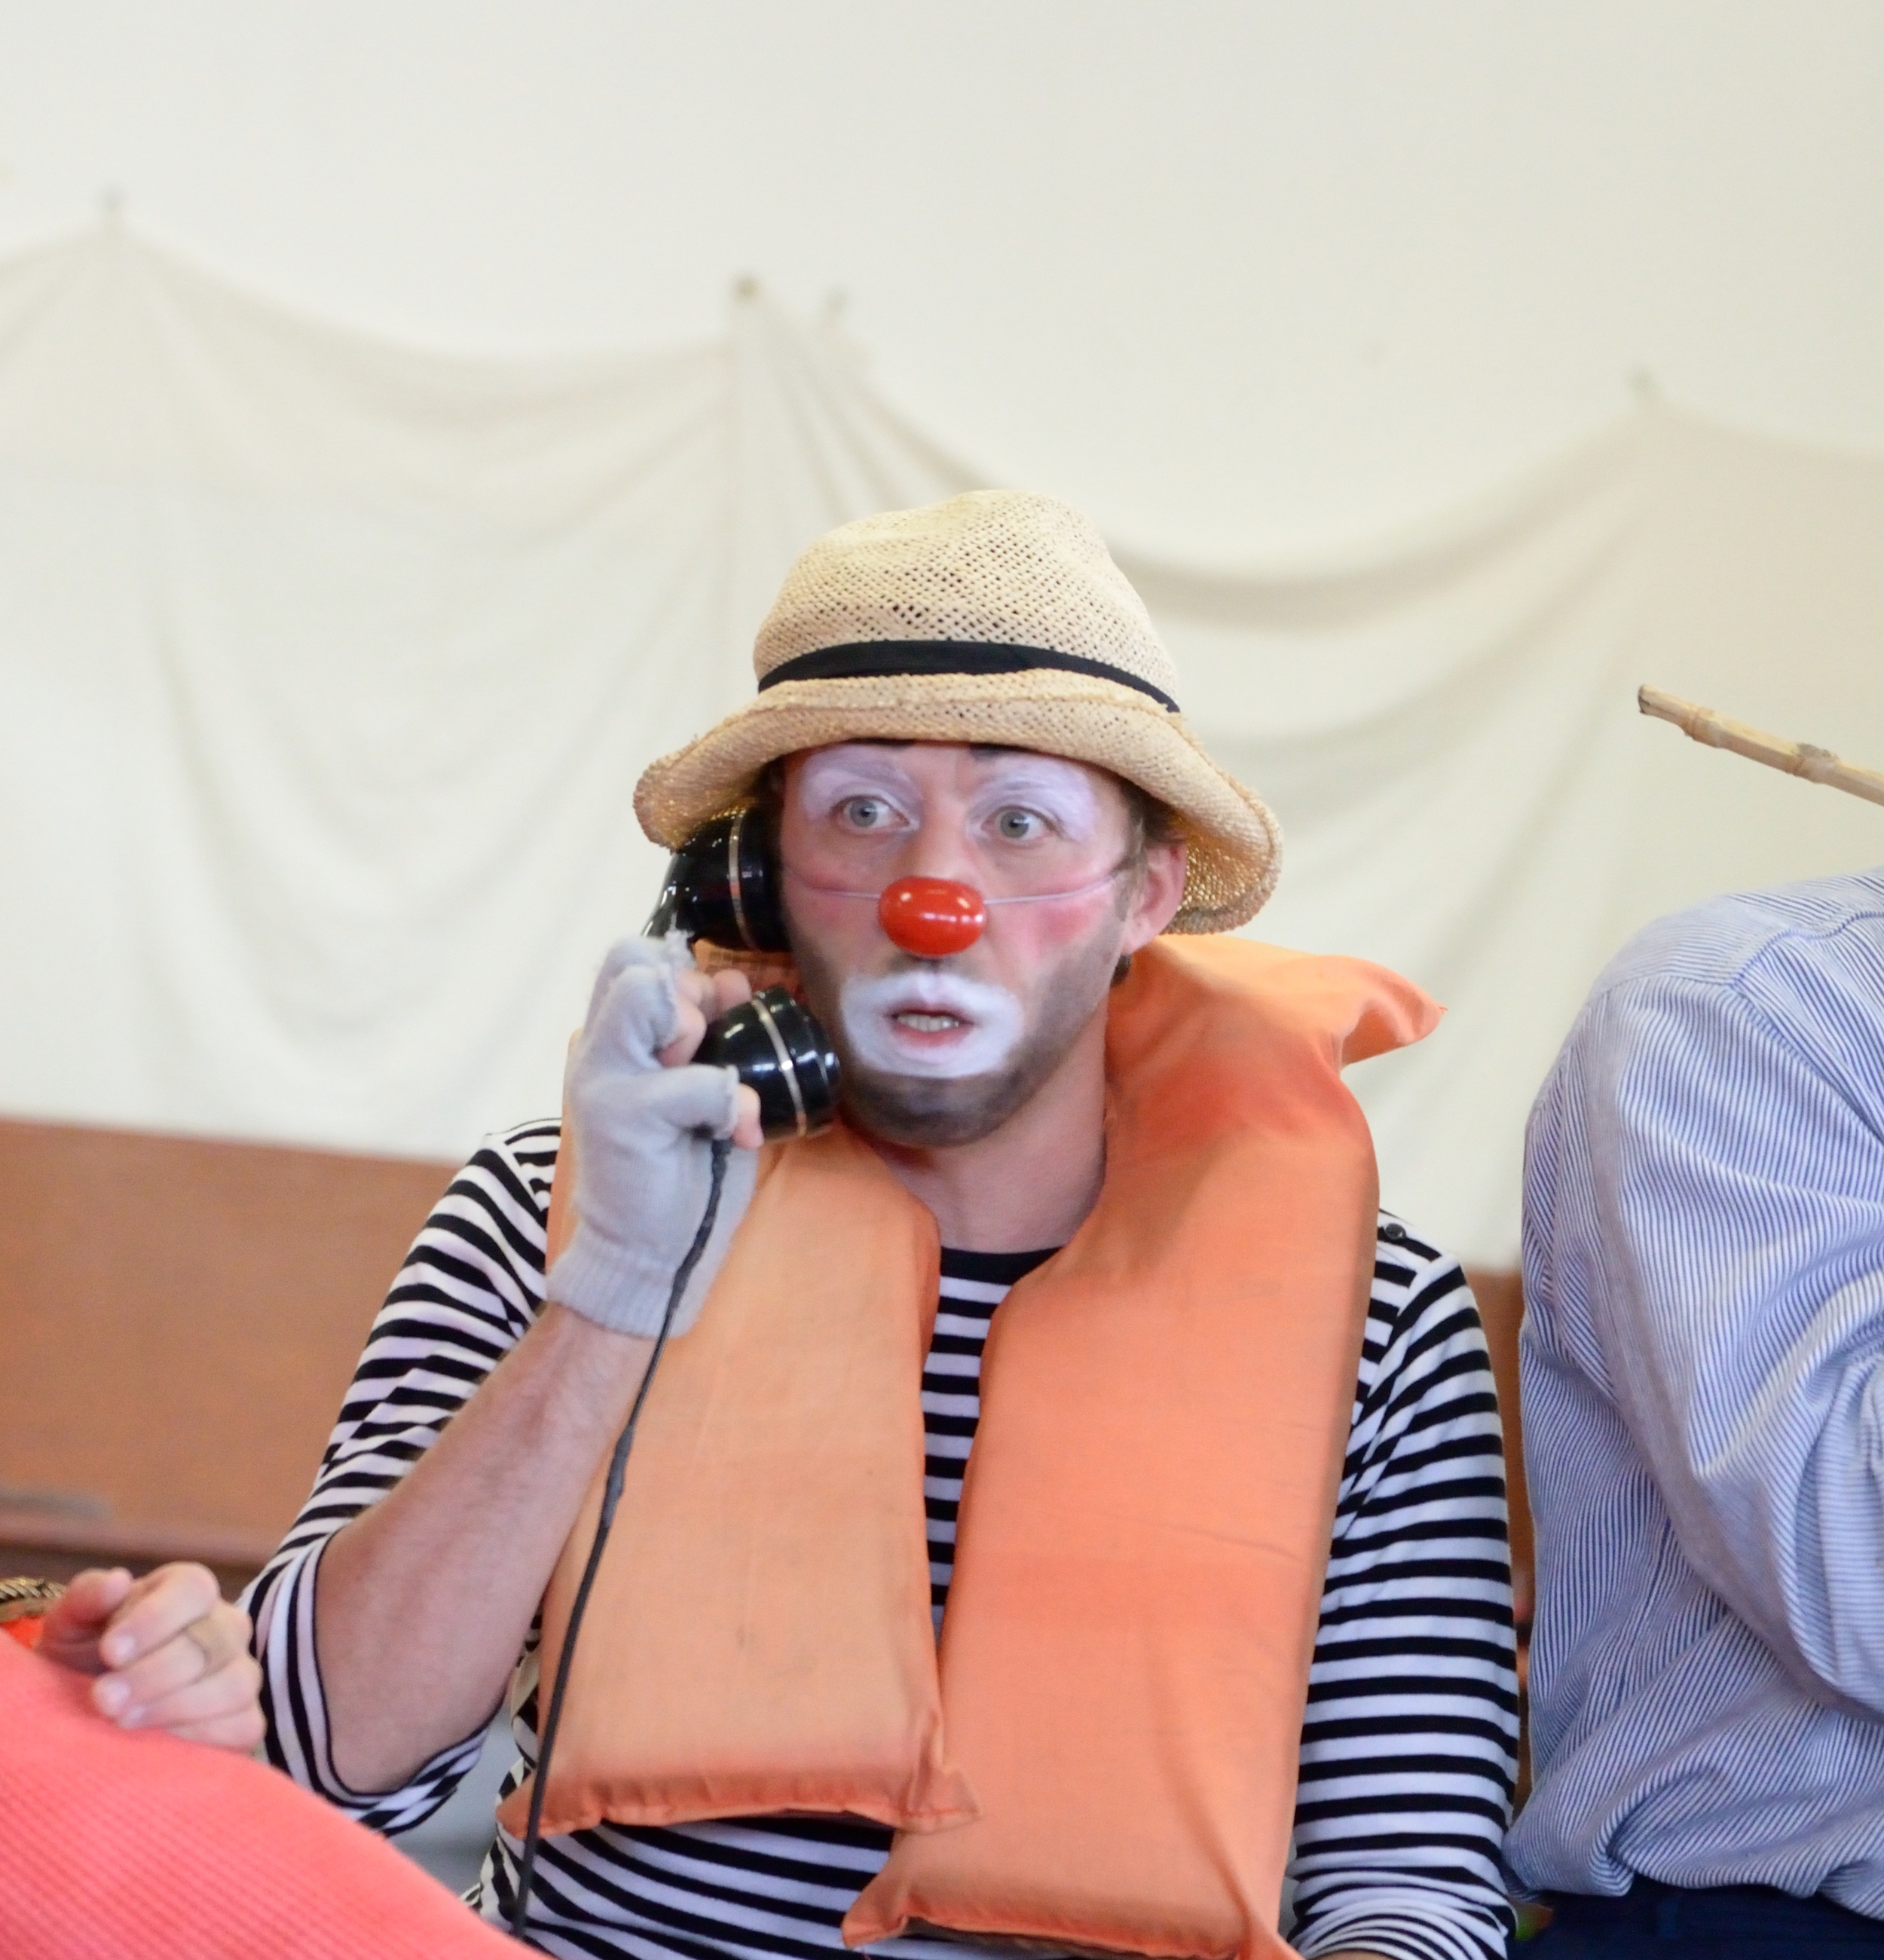 Clown on the phone